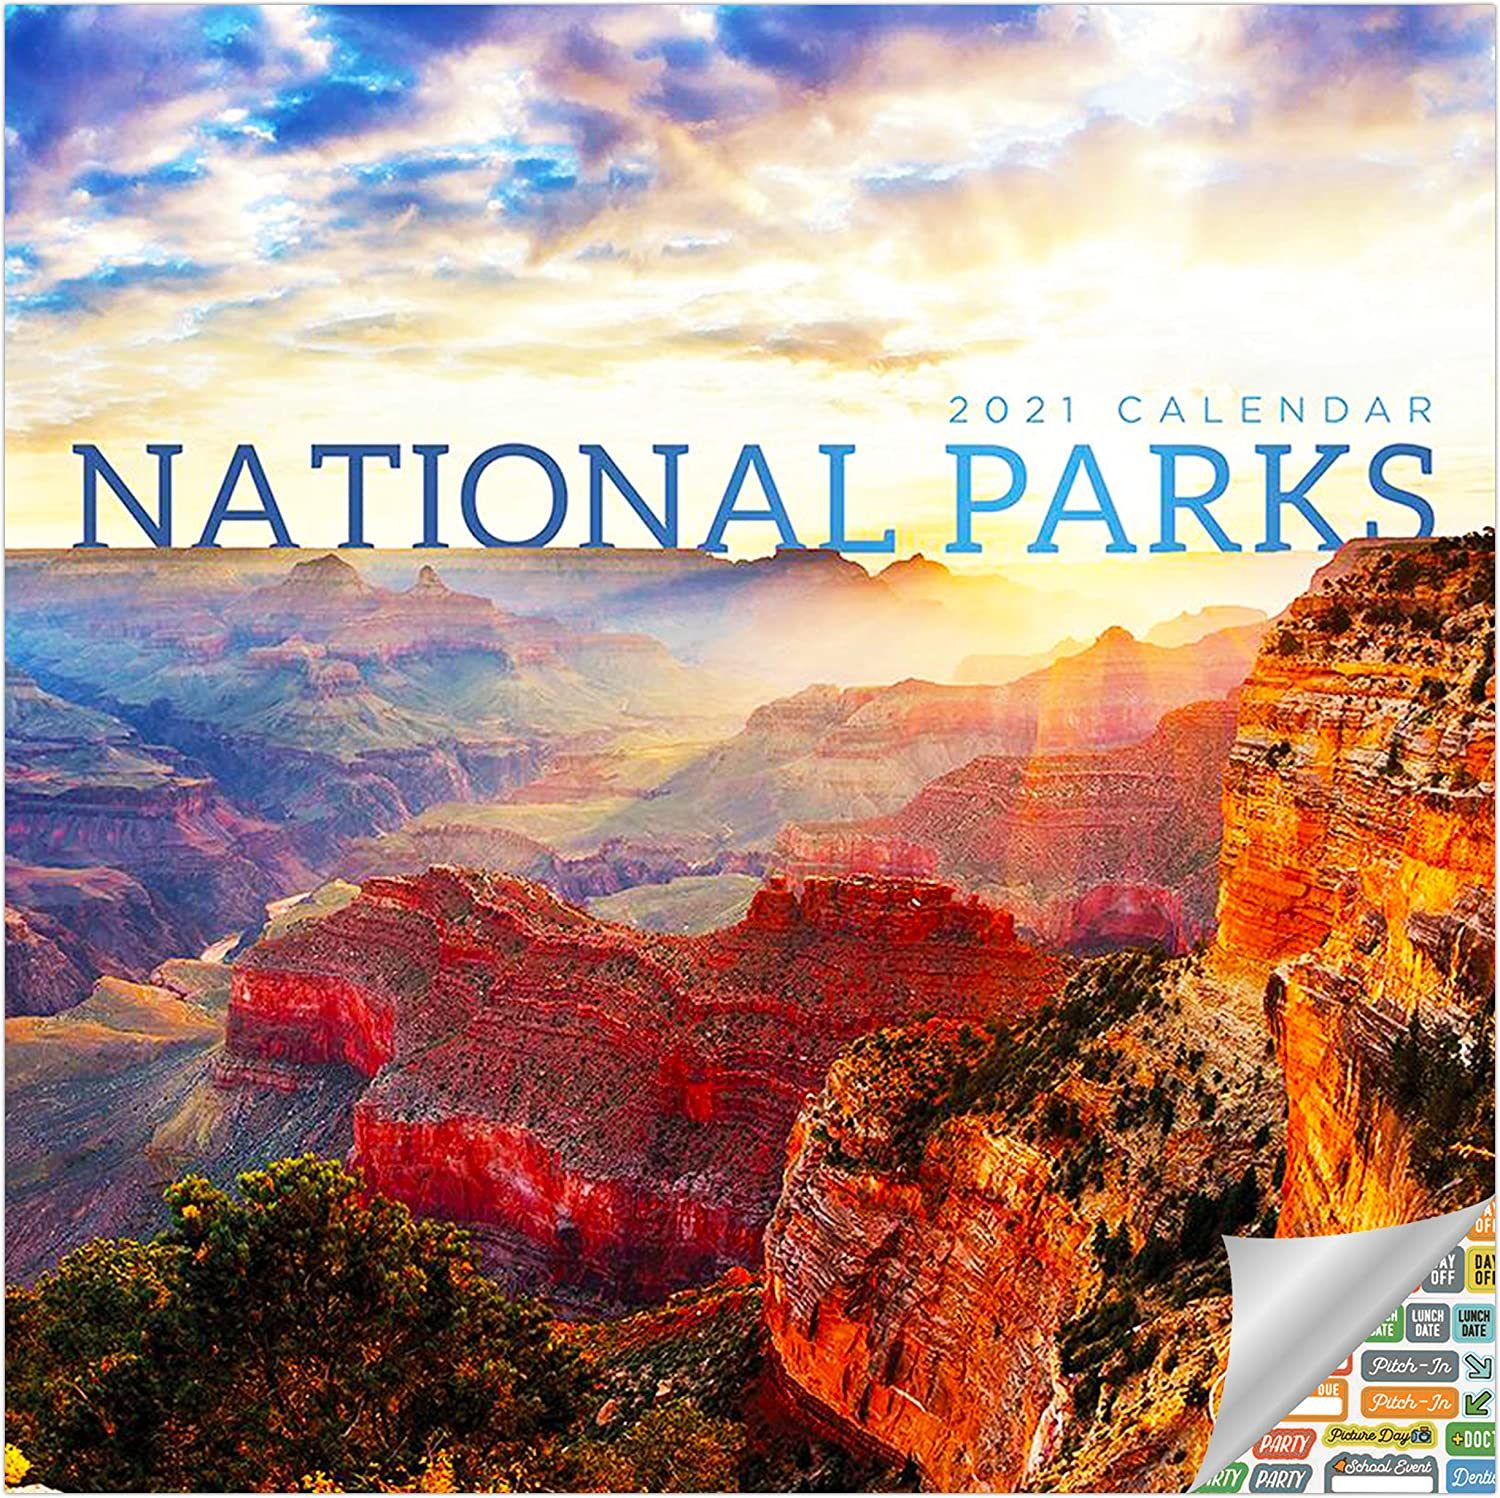 National Parks Calendar 2021 Bundle - Deluxe 2021 America's National Parks Mini Calendar with Over 100 Calendar Stickers (Nature Gifts, Office Supplies)